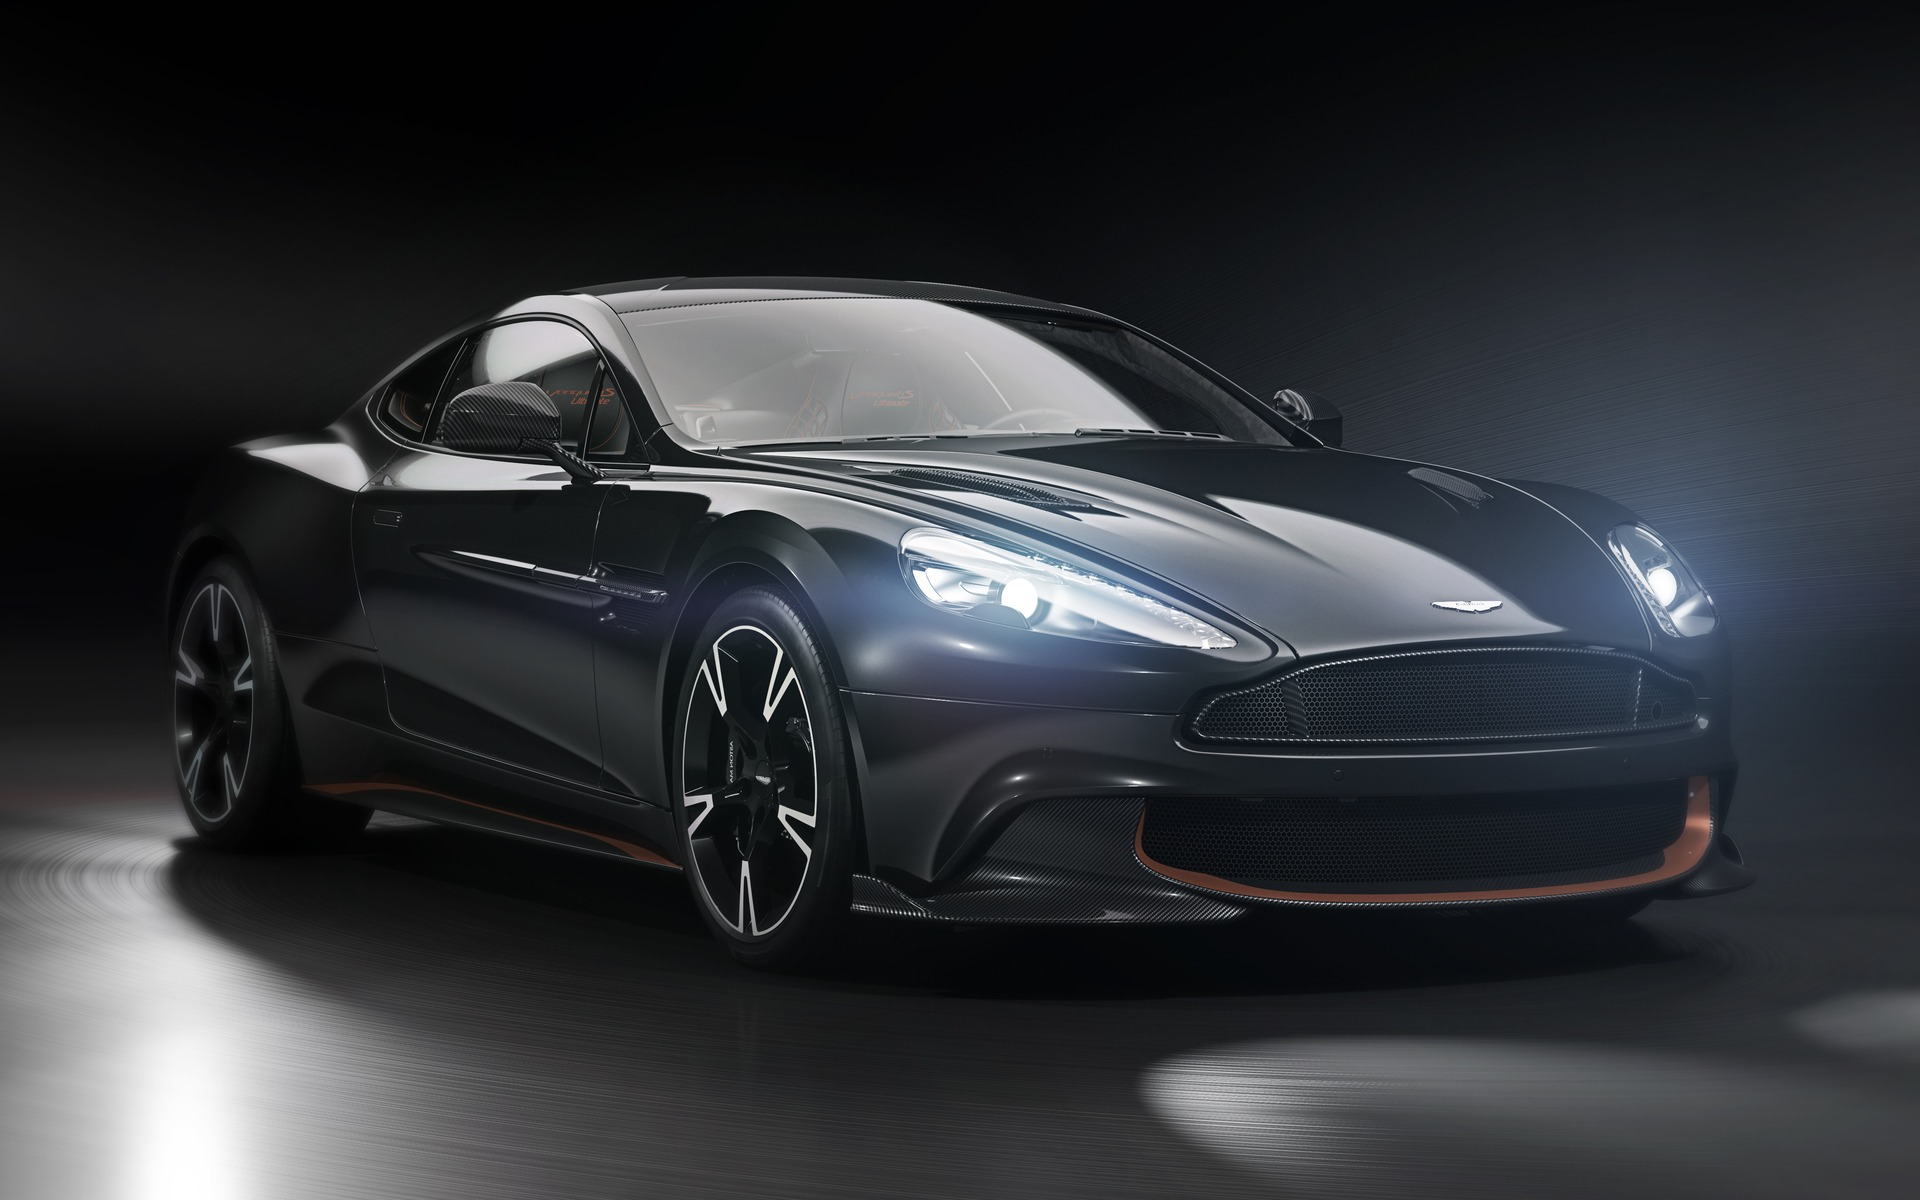 Aston Martin Vanquish S Ultimate The Final Edition The Car Guide - 2018 aston martin vanquish coupe